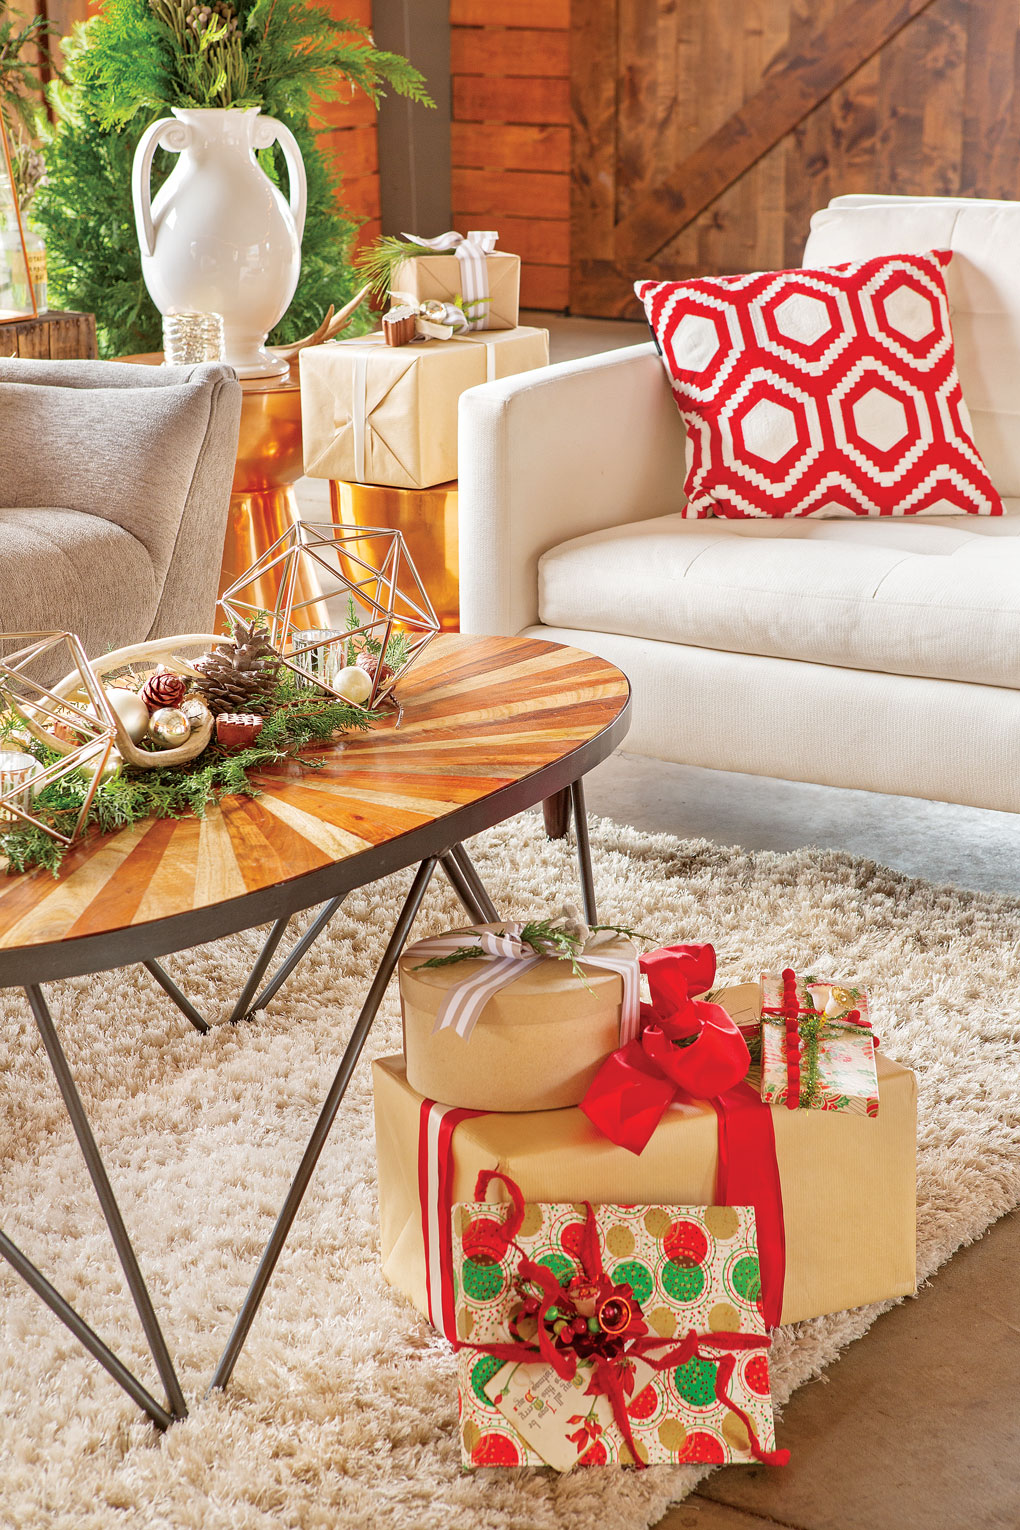 Sitting area with a light colored couch and armchair in the background and a midcentury inspired coffee table with a pile of wrapped Christmas gifts in the foreground.